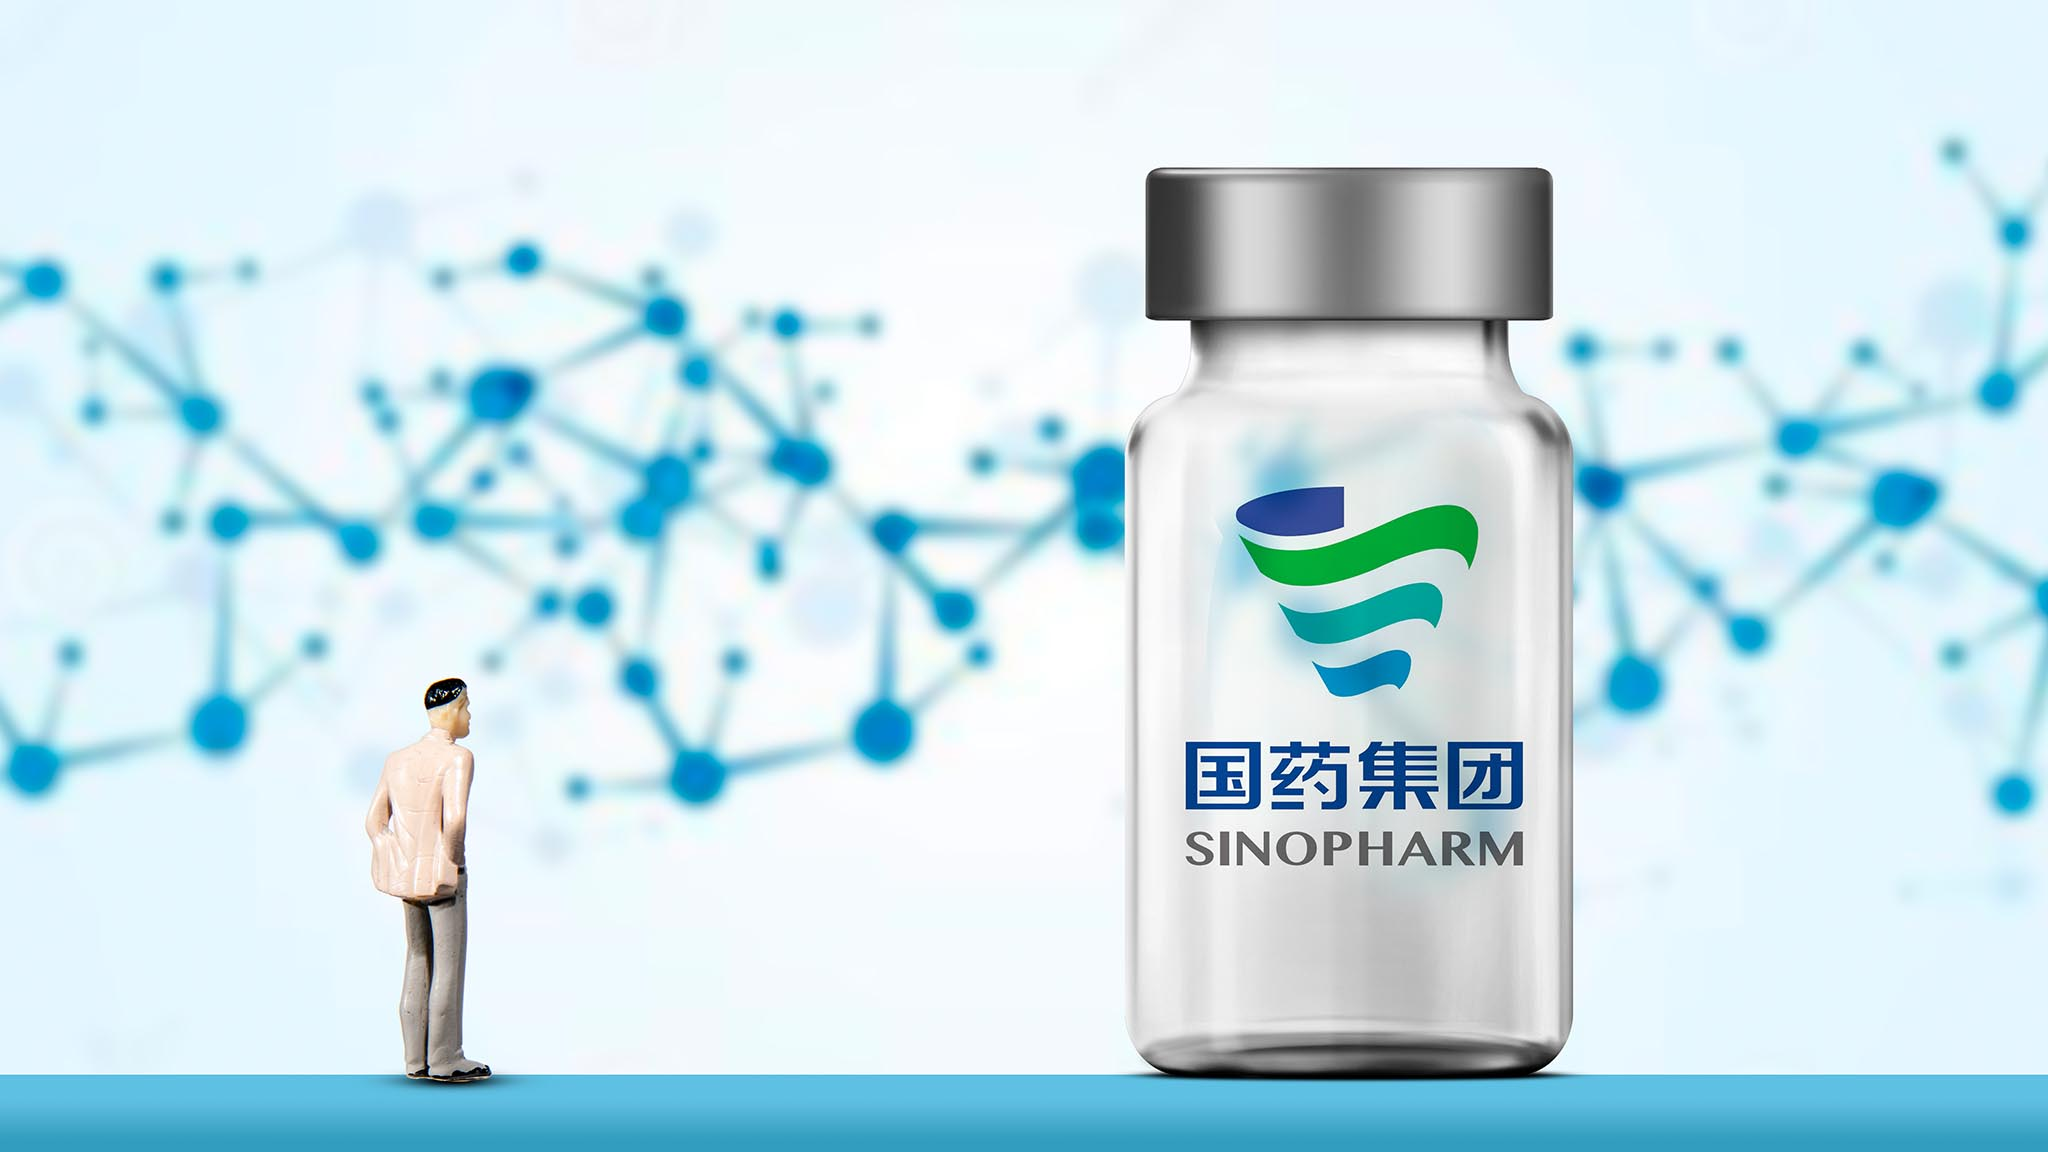 Sinopharm rolls out first batch of vaccine under COVAX - CGTN